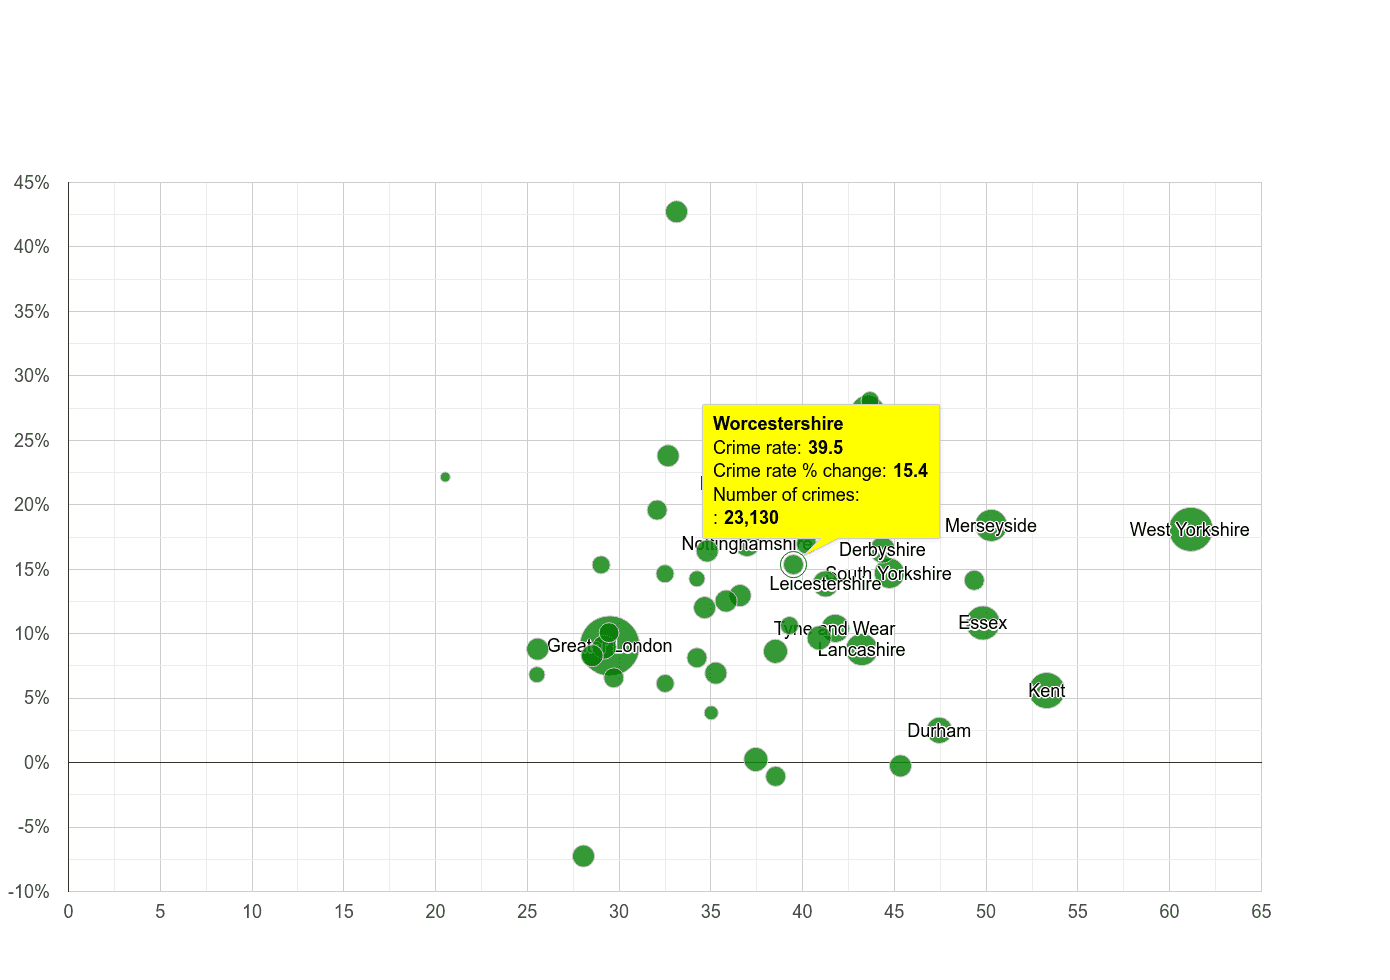 Worcestershire violent crime rate compared to other counties